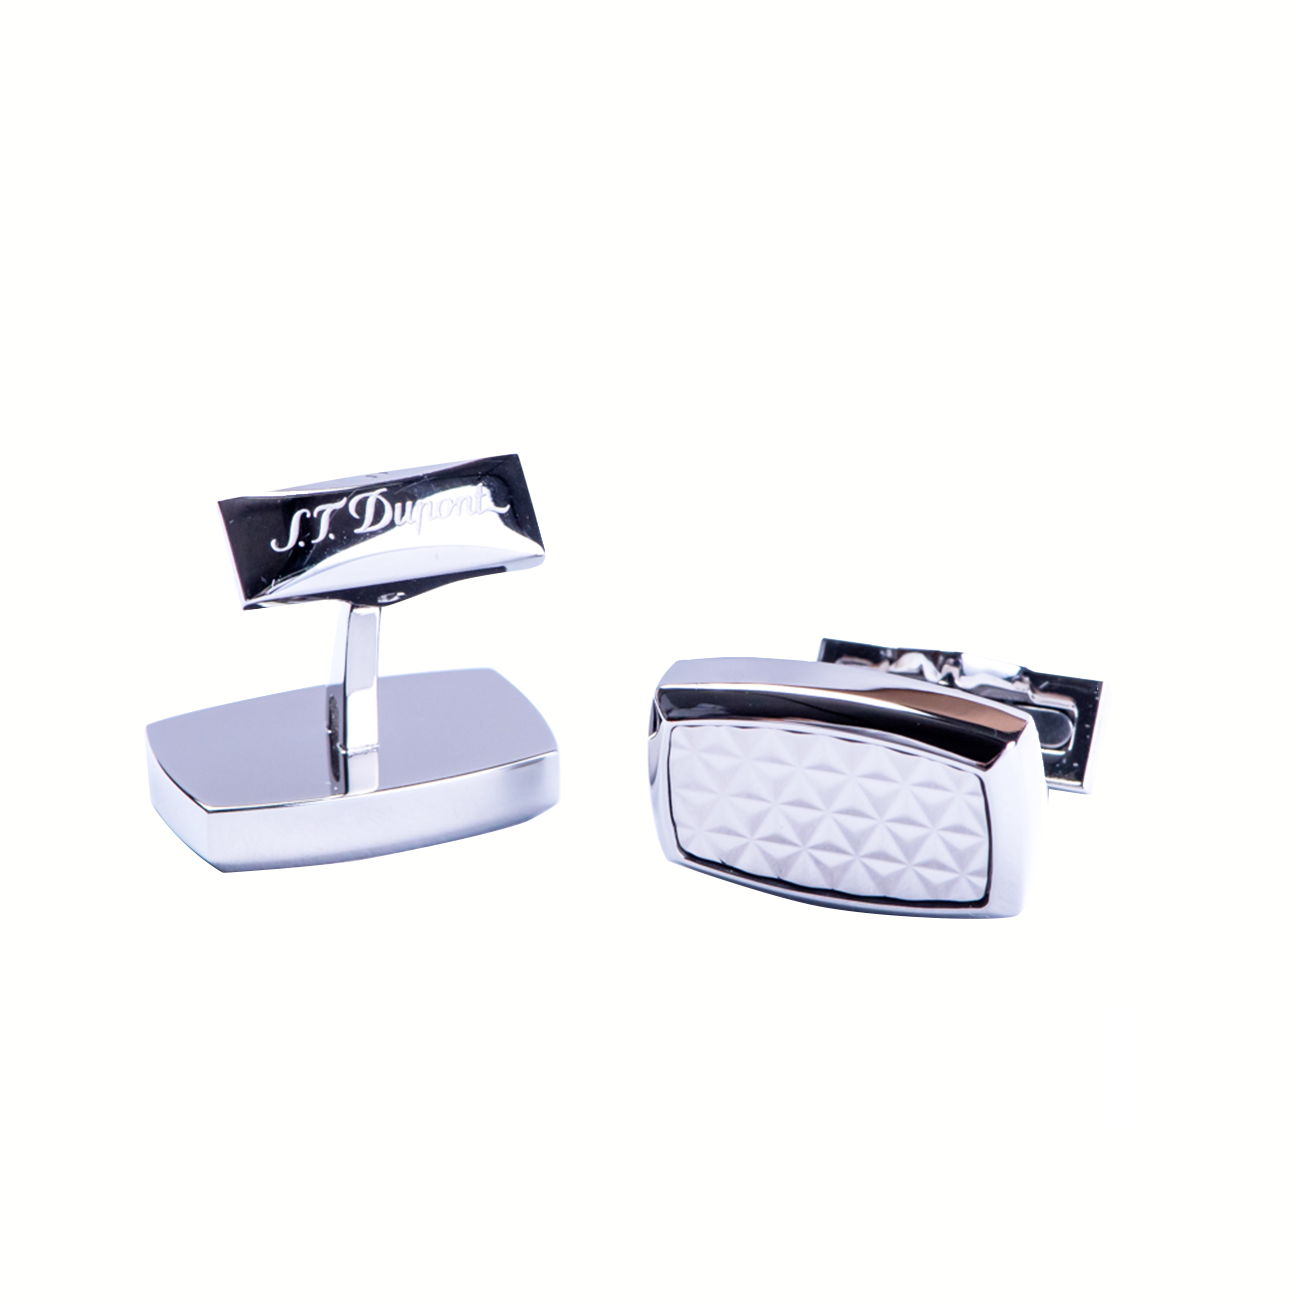 005521 PALLADIUM FINISH CUFFLINKS imagine produs